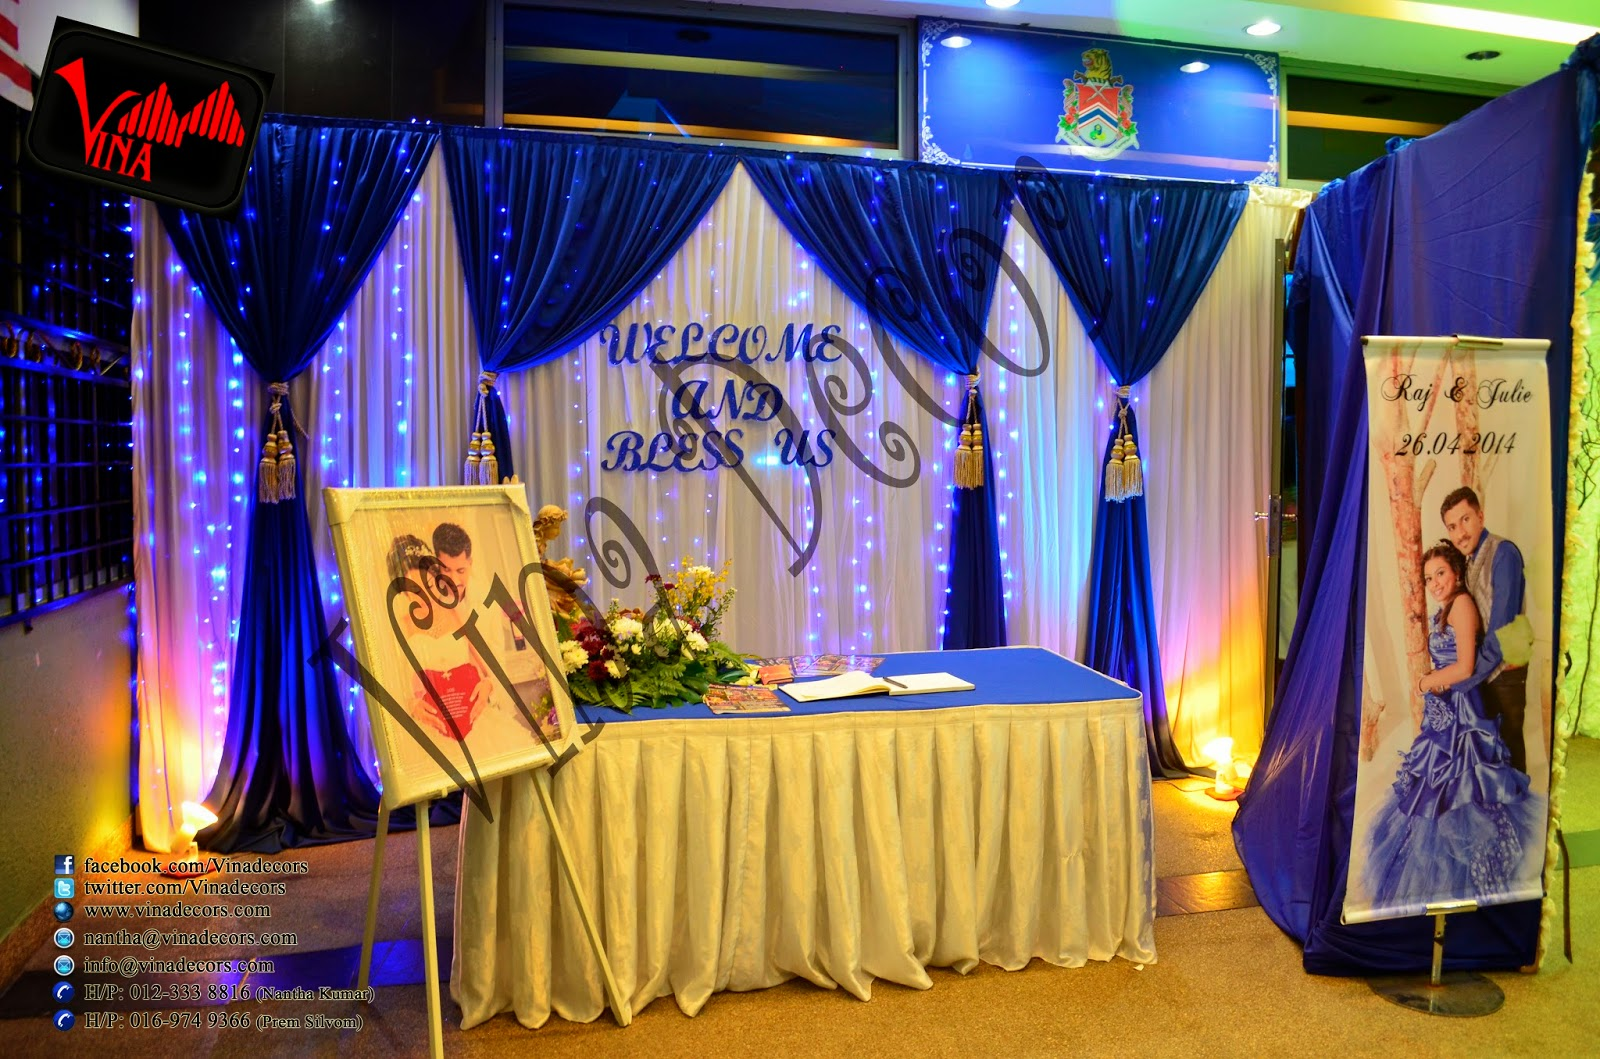 A Truly Magical Winter Wedding Dinner Concept at Pusat Komuniti Setul Perdana, Jalan 2/48A, Sentul Perdana, Bandar Baru Sentul Perdana, Kuala Lumpur on Saturday 26/04/2014 7PM (Entrance Decor with cloth, lighting, and dry stam, Walk way pillar (tree 11 feet tall) enhanced with white leafs and hanging crystal, Walk way arch / dome with hanging crystal and dry stam, main table setting, stage setting, photography section custom design as per couple request, table and chair, and projector screen 10 x 10 feet.